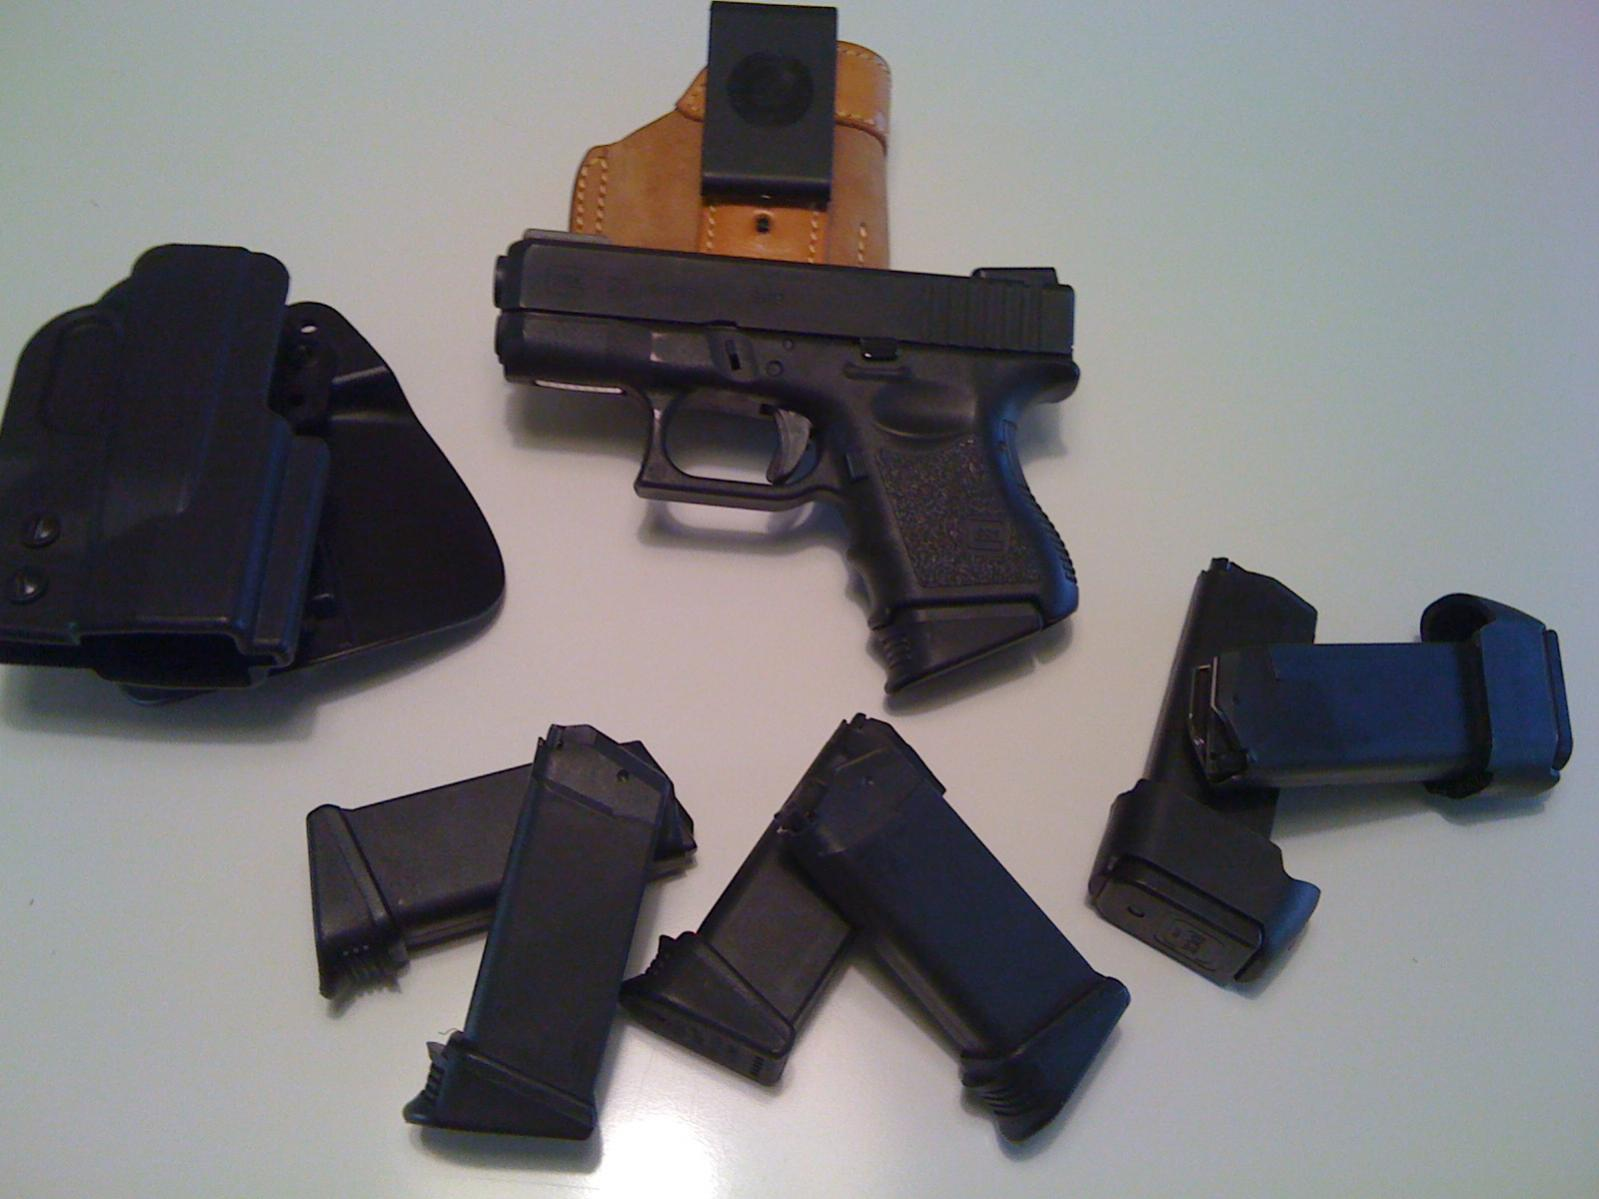 Should I Buy It?  Gen 2 Glock 26-photo.jpg